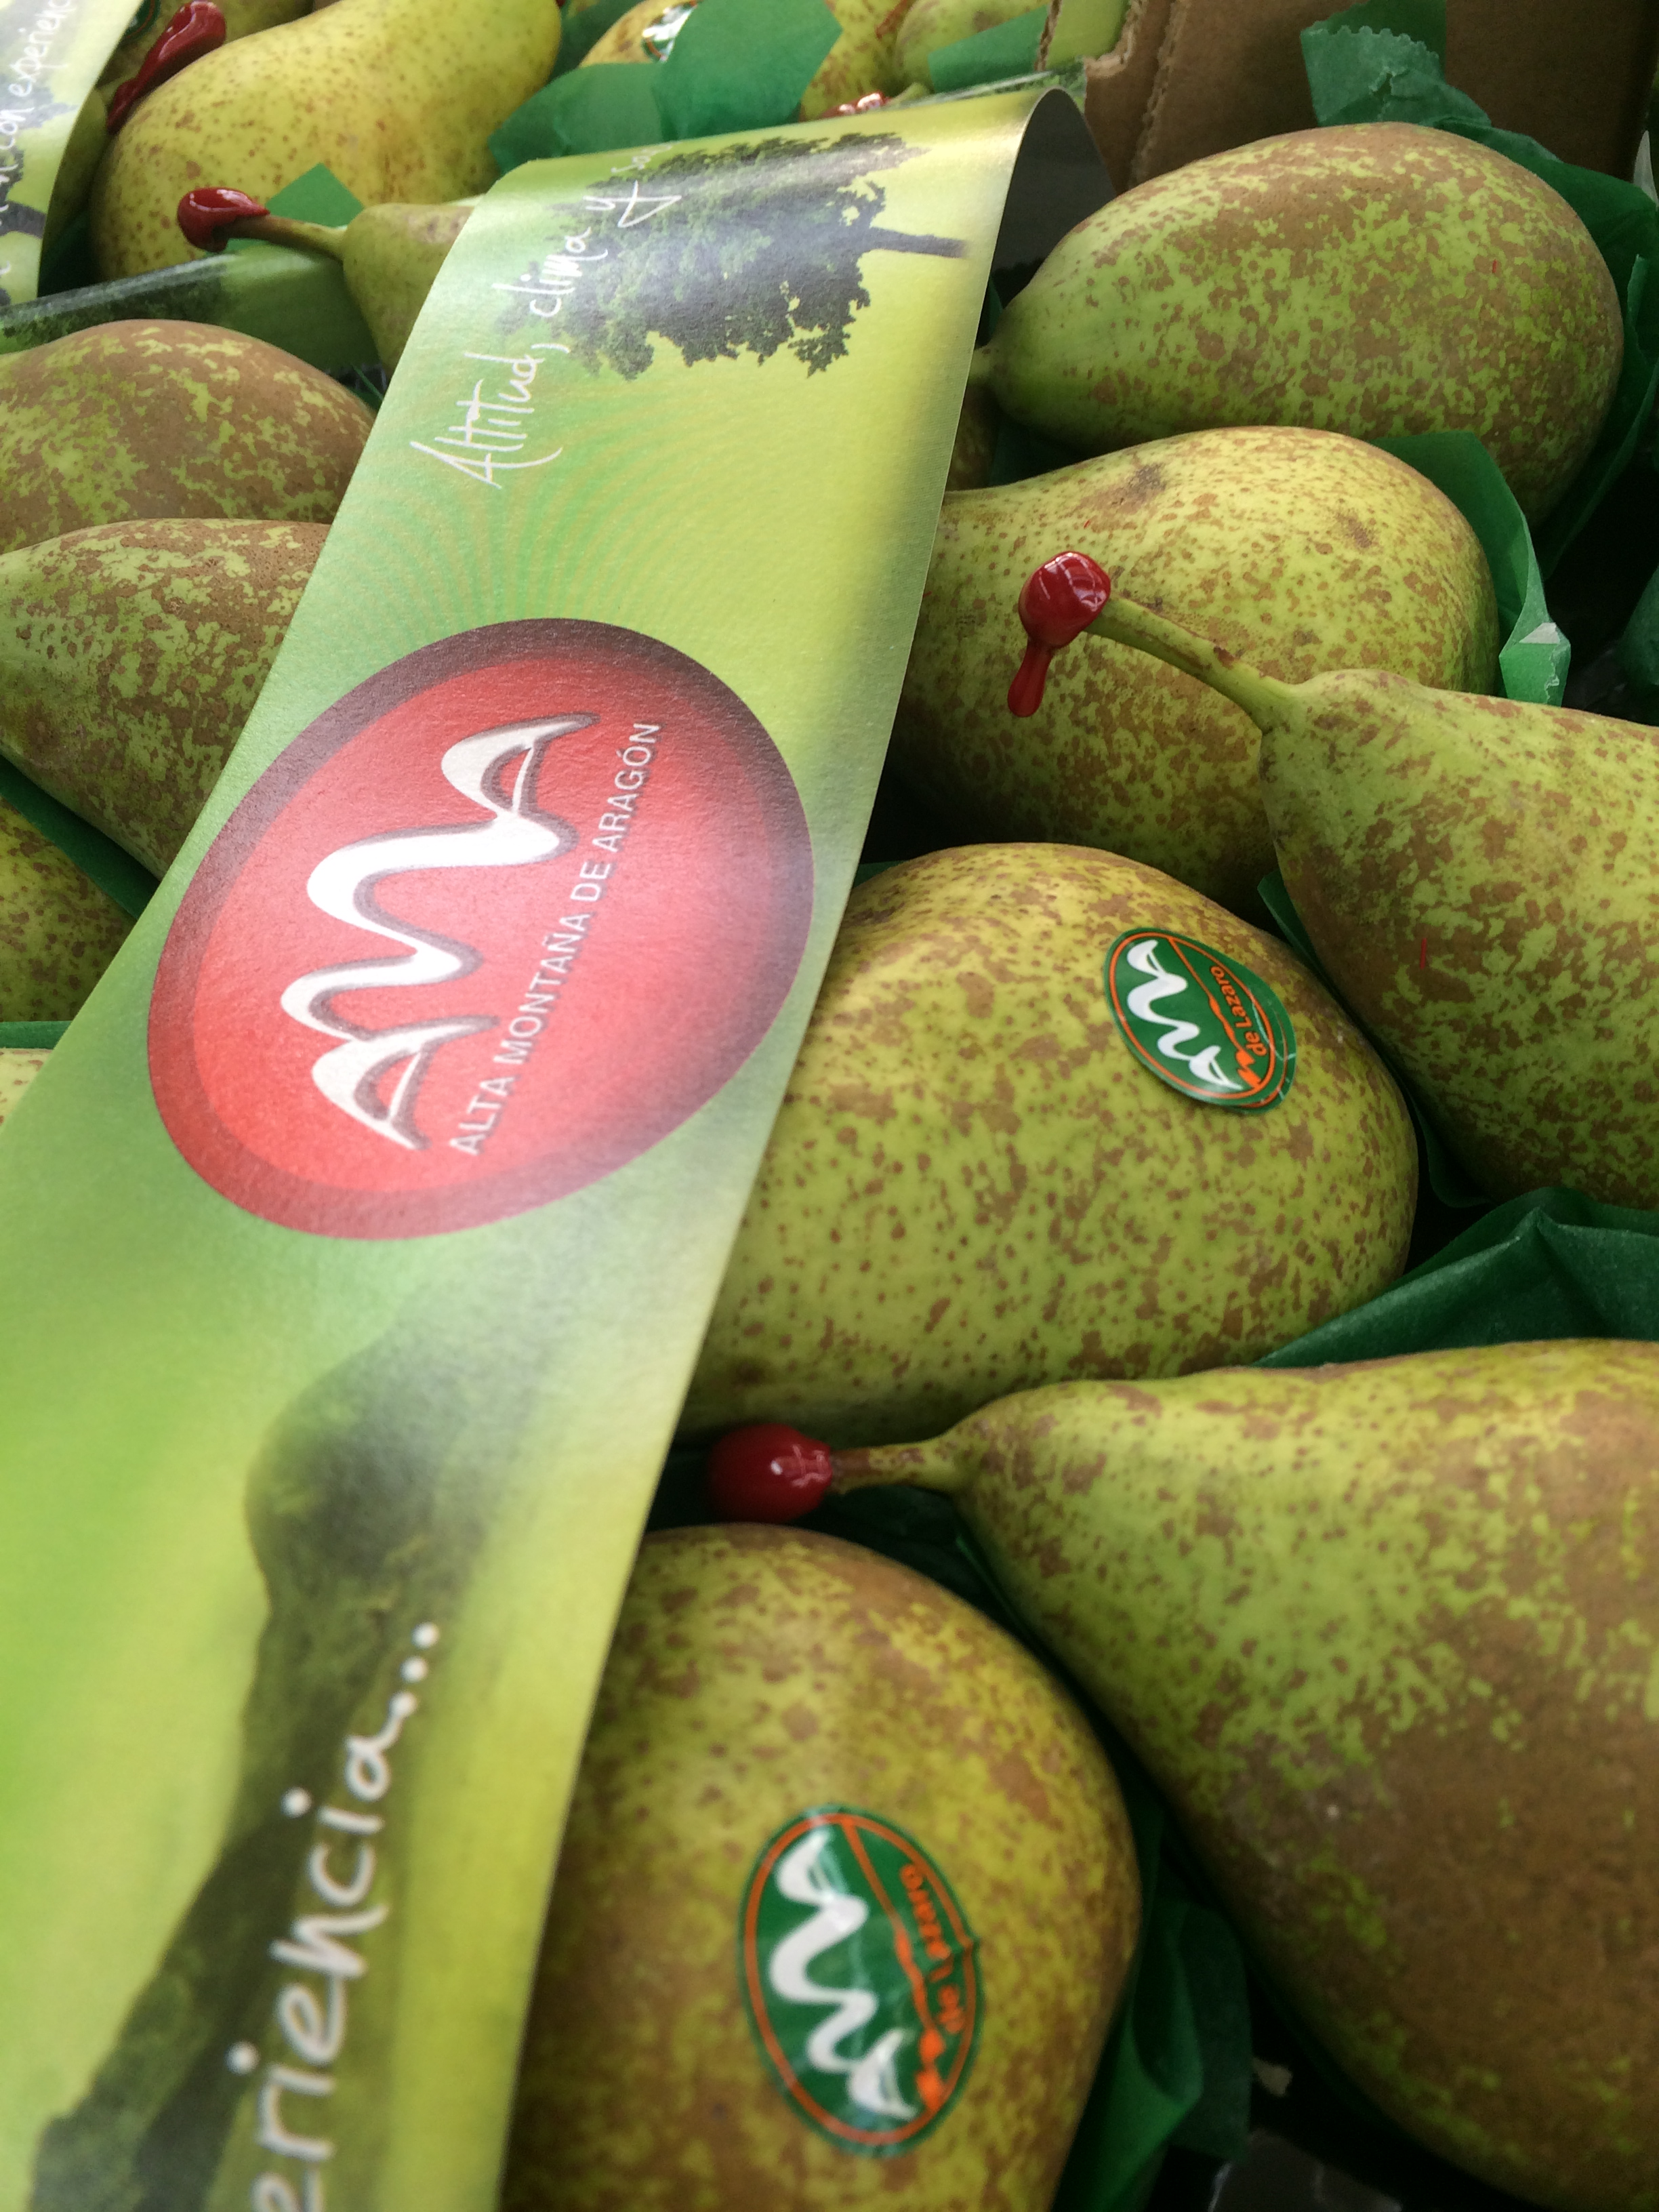 Conference Pears: visible quality